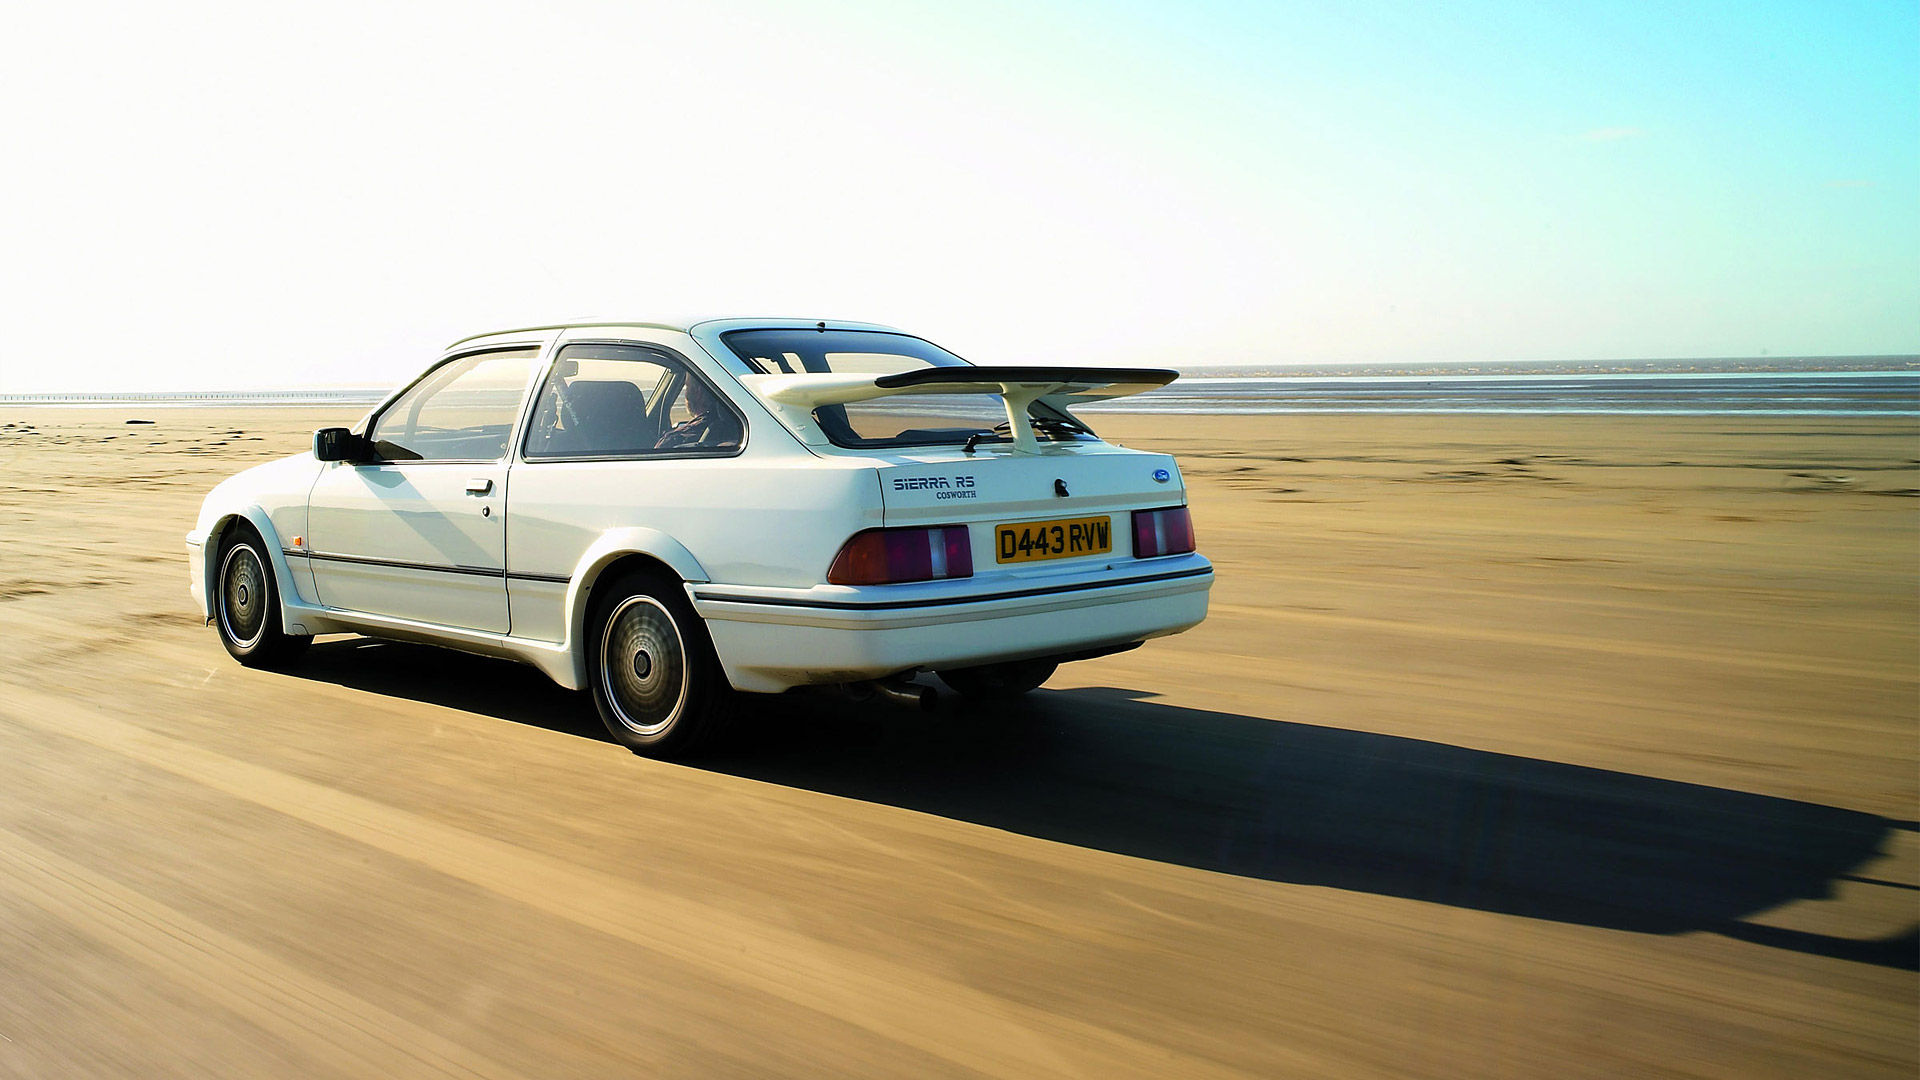 1986 Ford Sierra RS Cosworth